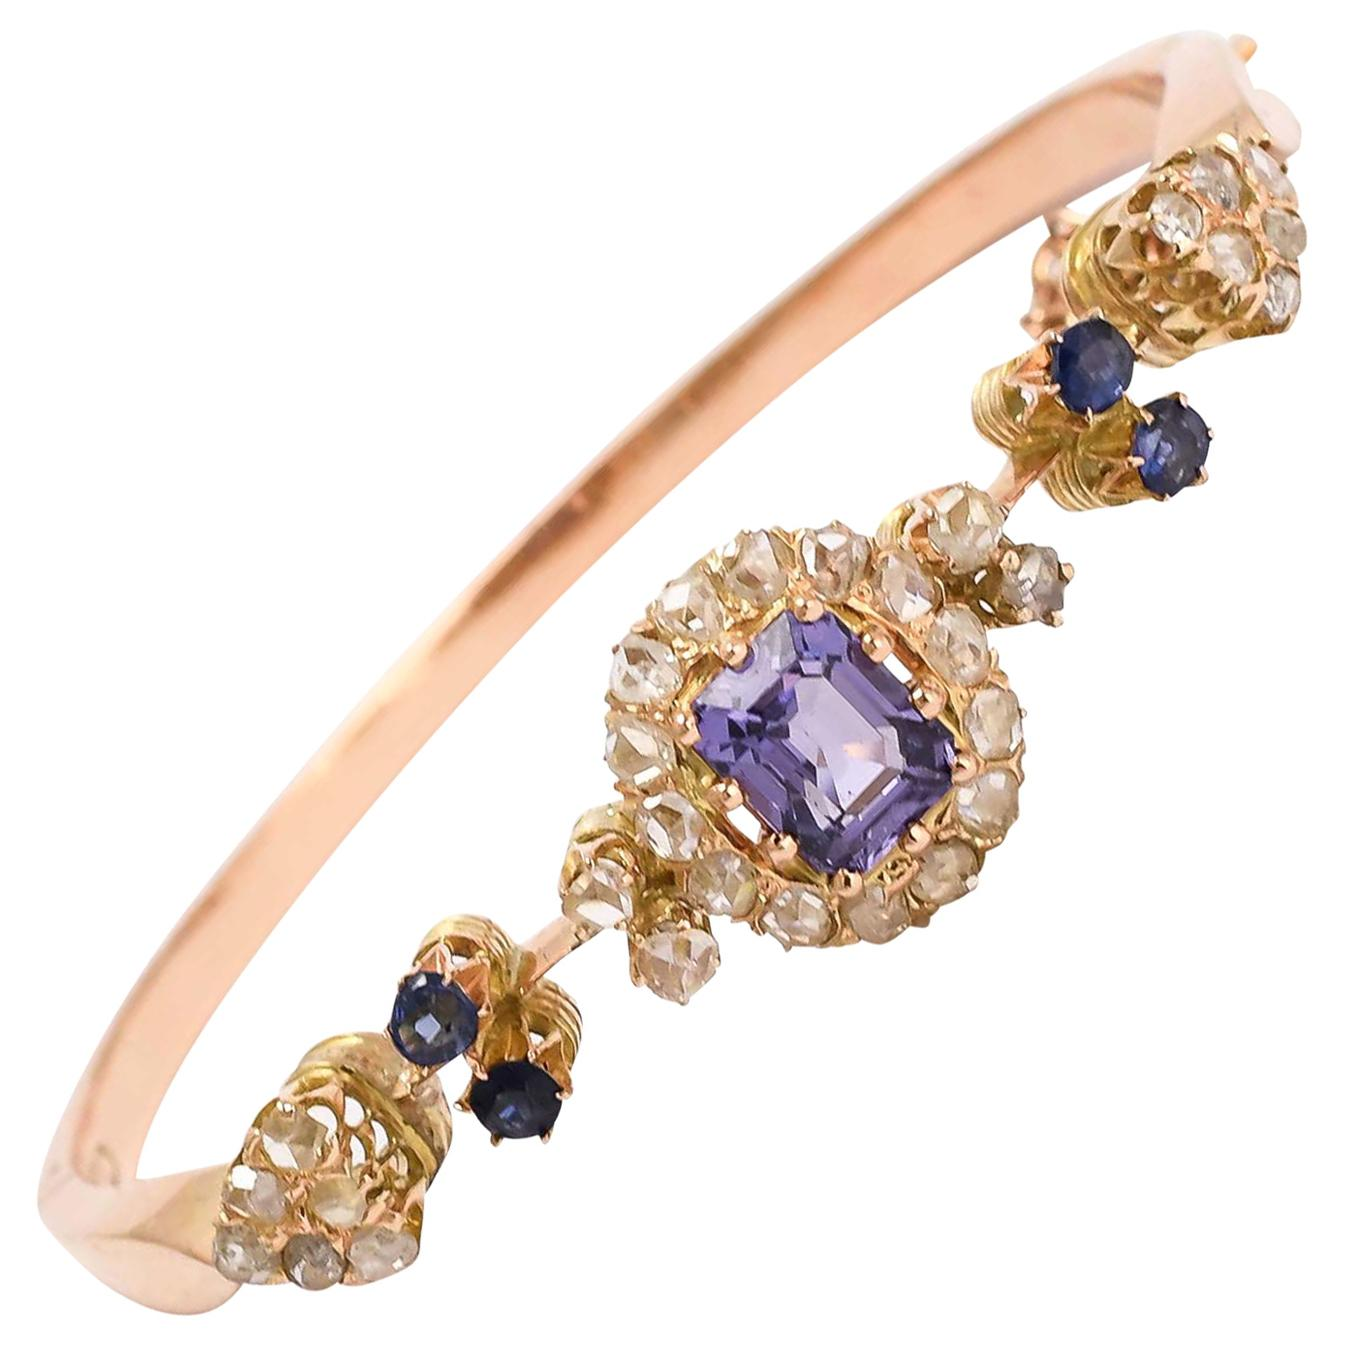 Antique Victorian Certified Blue Spinel Diamond Bangle